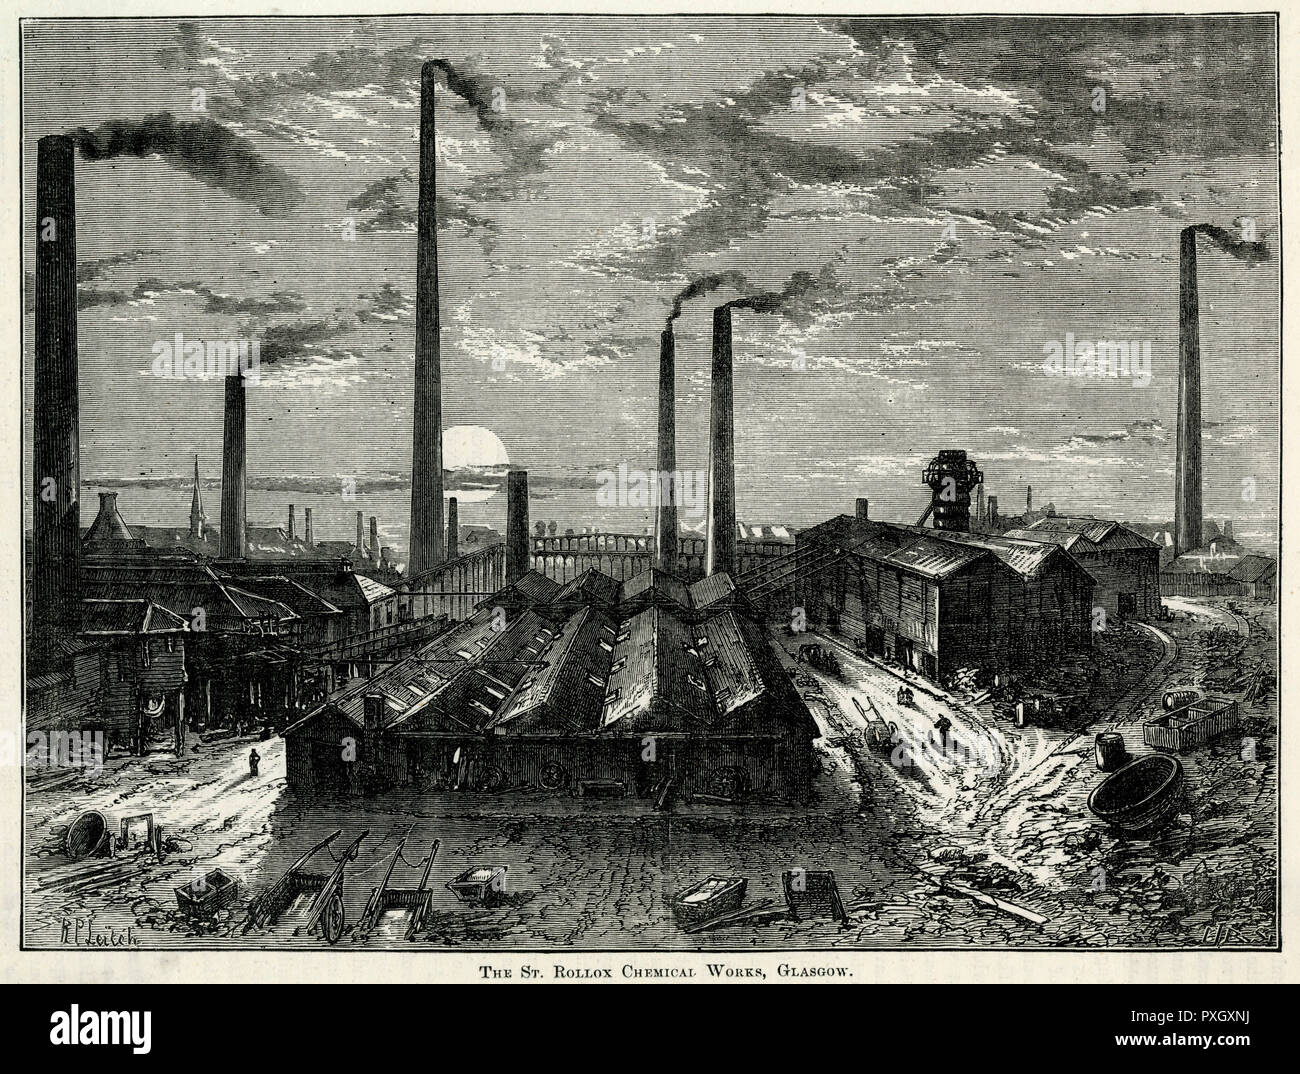 St. Rollox Chemical Works in Glasgow, making dry bleaching powder which was sold world wide and grew to be the worlds largest chemical Works. Showing the exterior of the factory covering 50 acres by the River Clyde, with its 450 feet chimneys known as Tennant's Stalk, coursing atmospheric pollution.     Date: 1830s - Stock Image